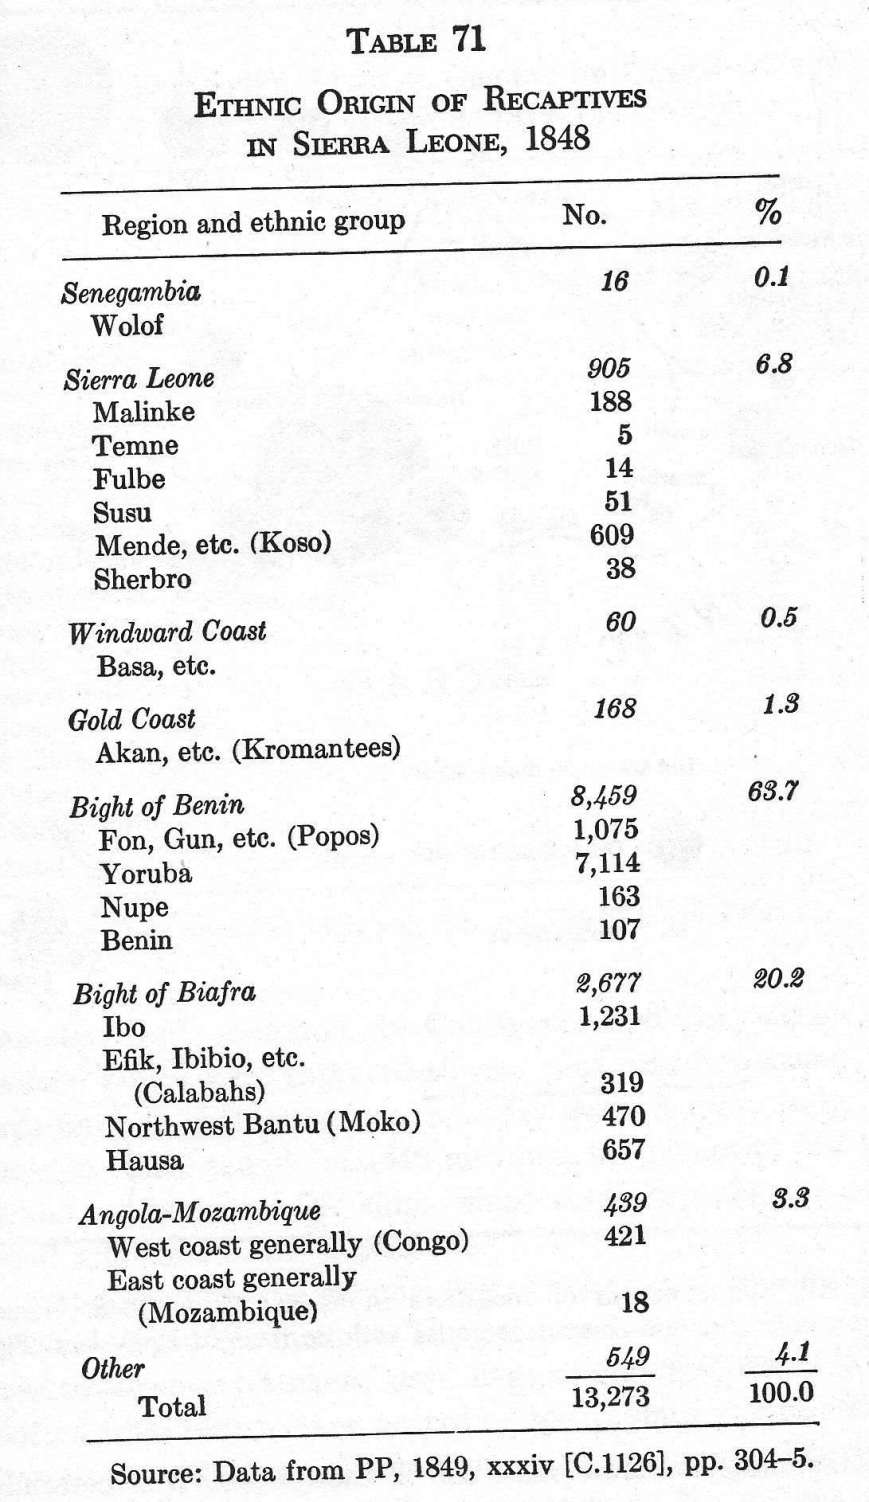 Ethnic Origins of Recaptives in Sierra Leone 1848sl